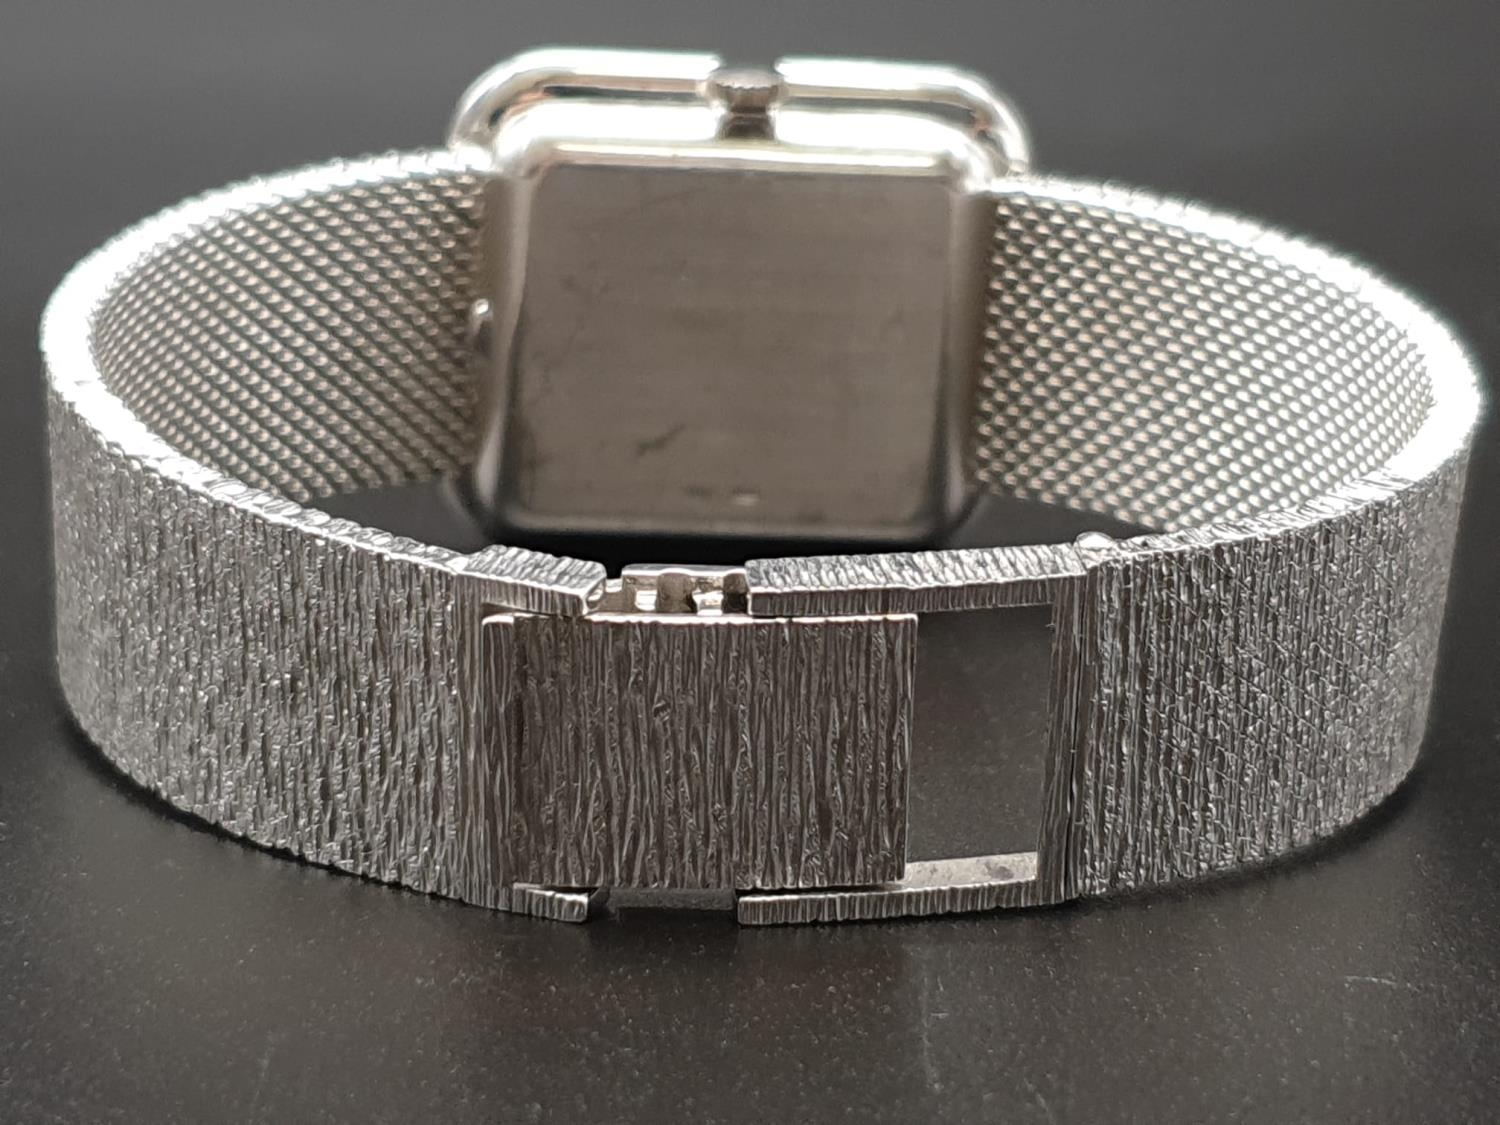 AN 18K WHITE GOLD DRESS WATCH WITH HALF DIAMOND BEZEL AND SOLID GOLD STRAP. 26MM - Image 6 of 12